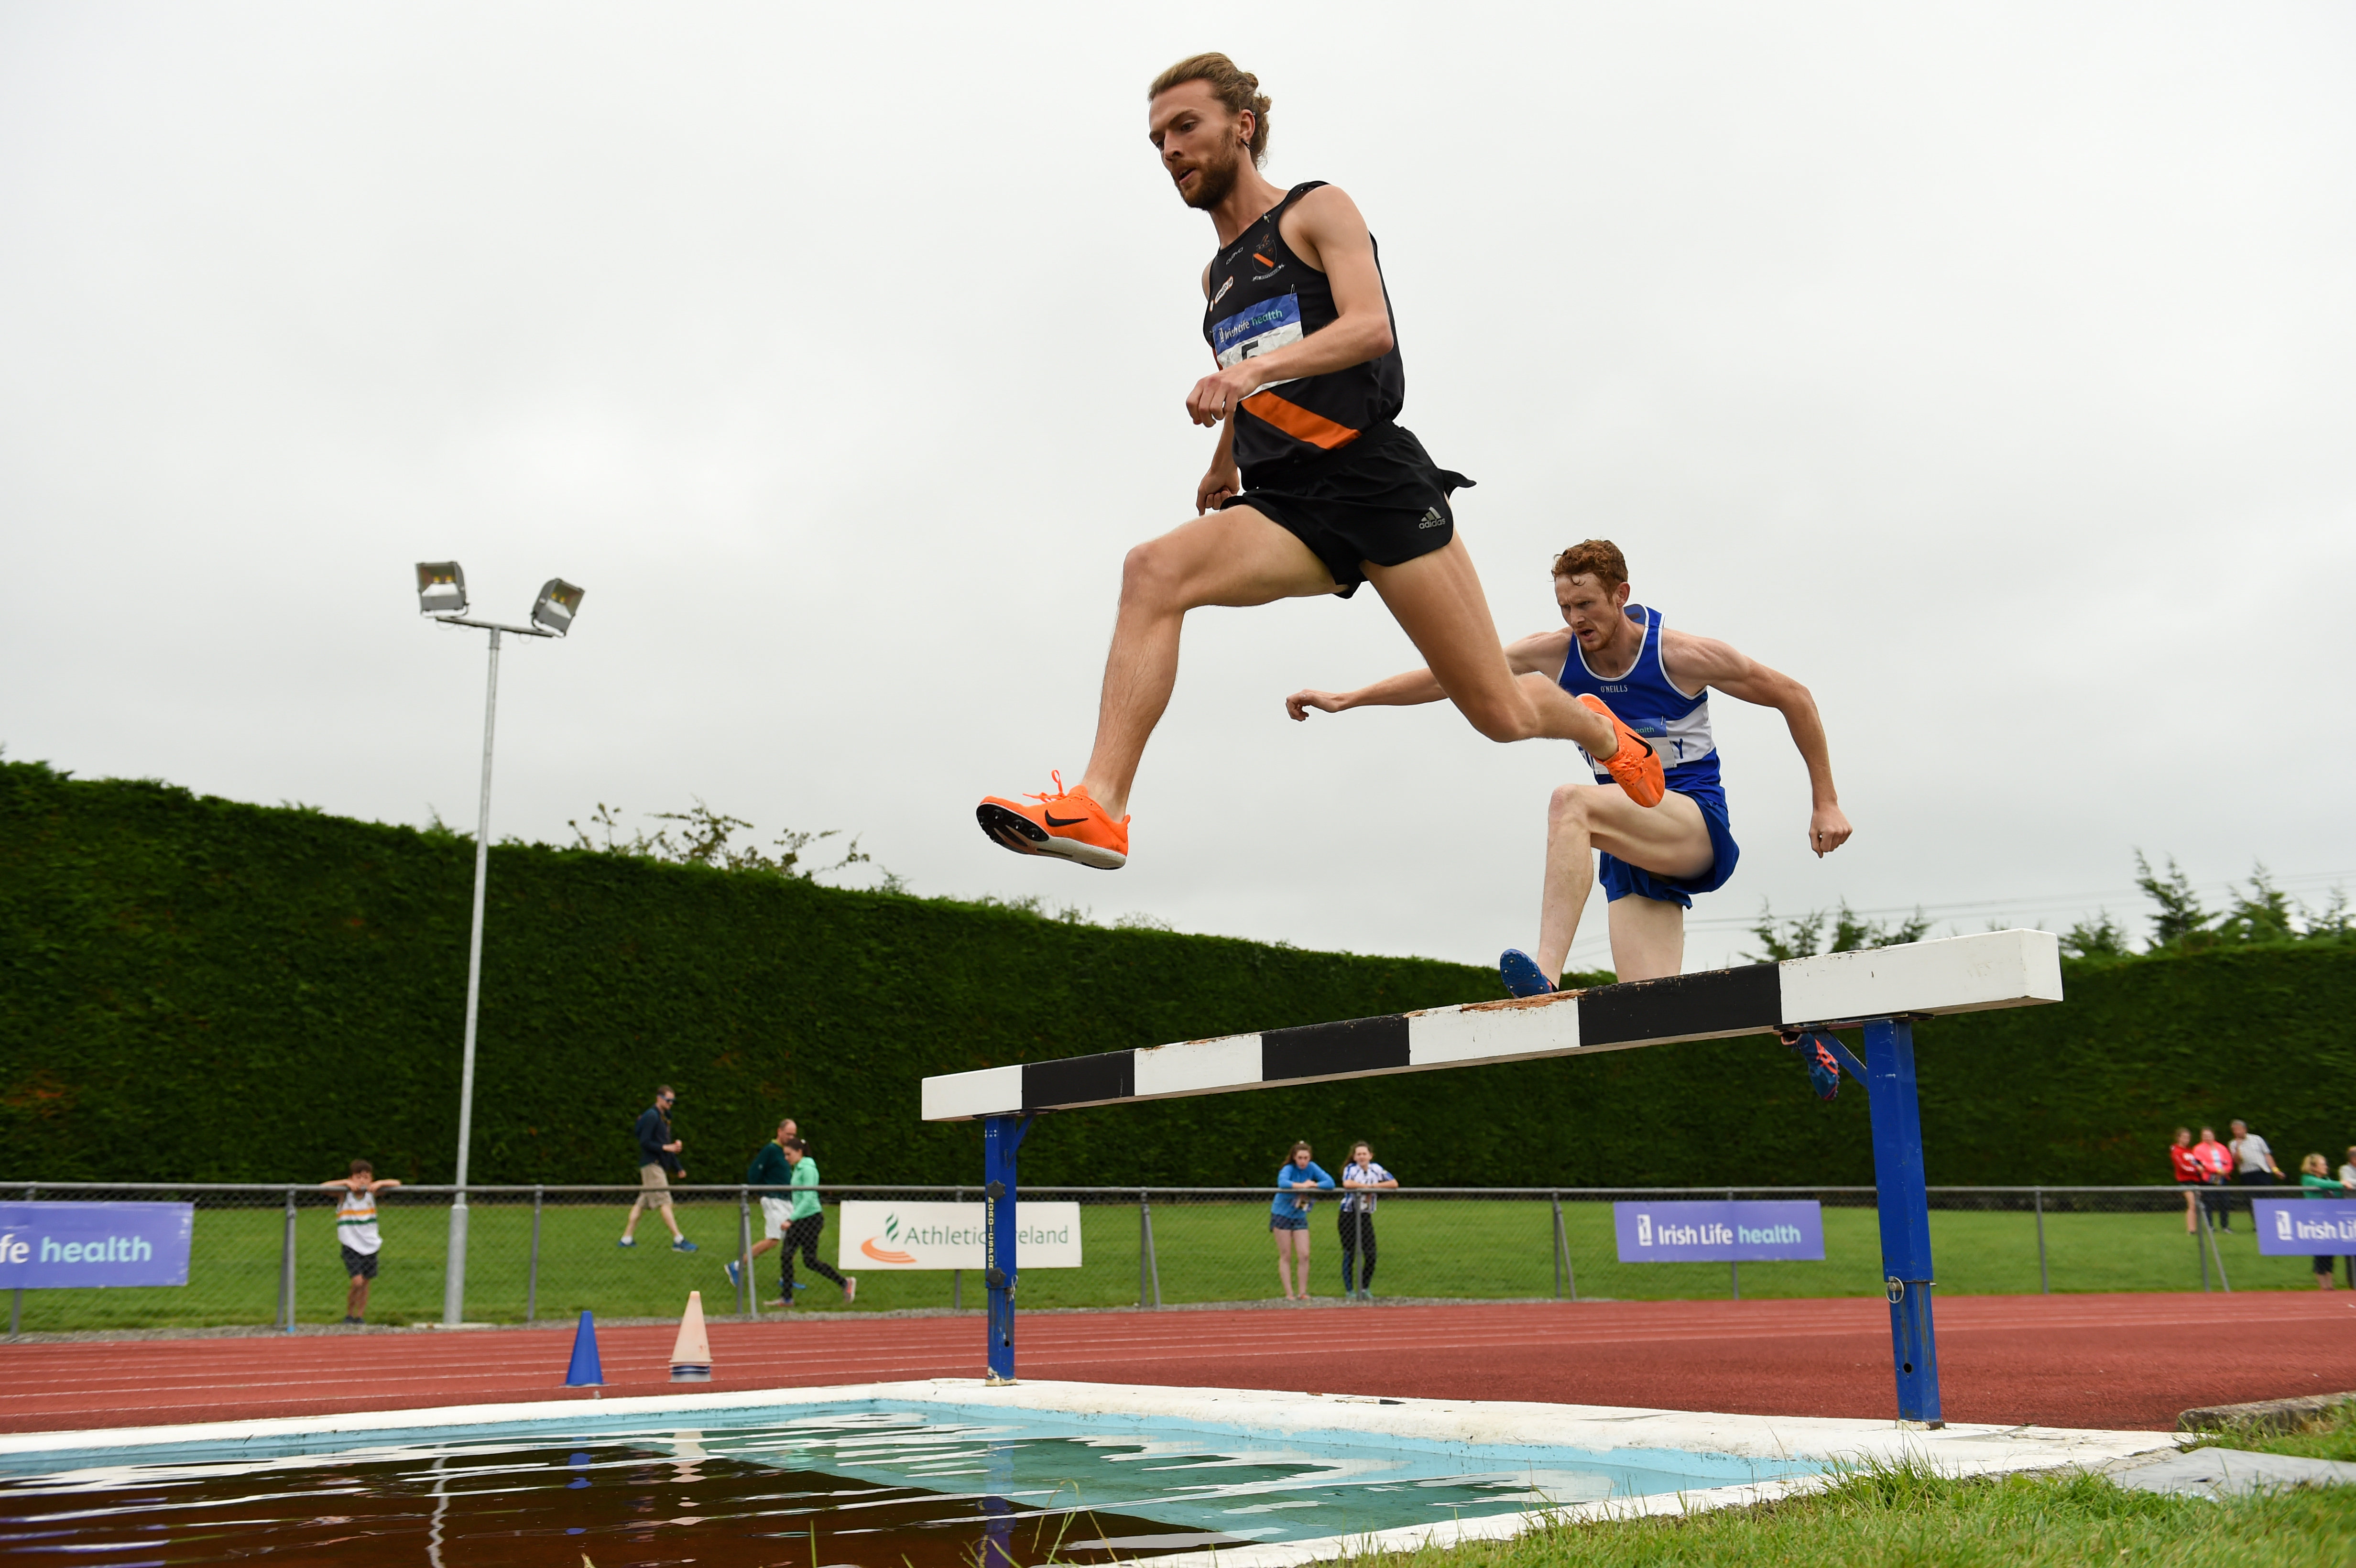 St Abbans and Clonliffe Harriers repeat history in National League Final